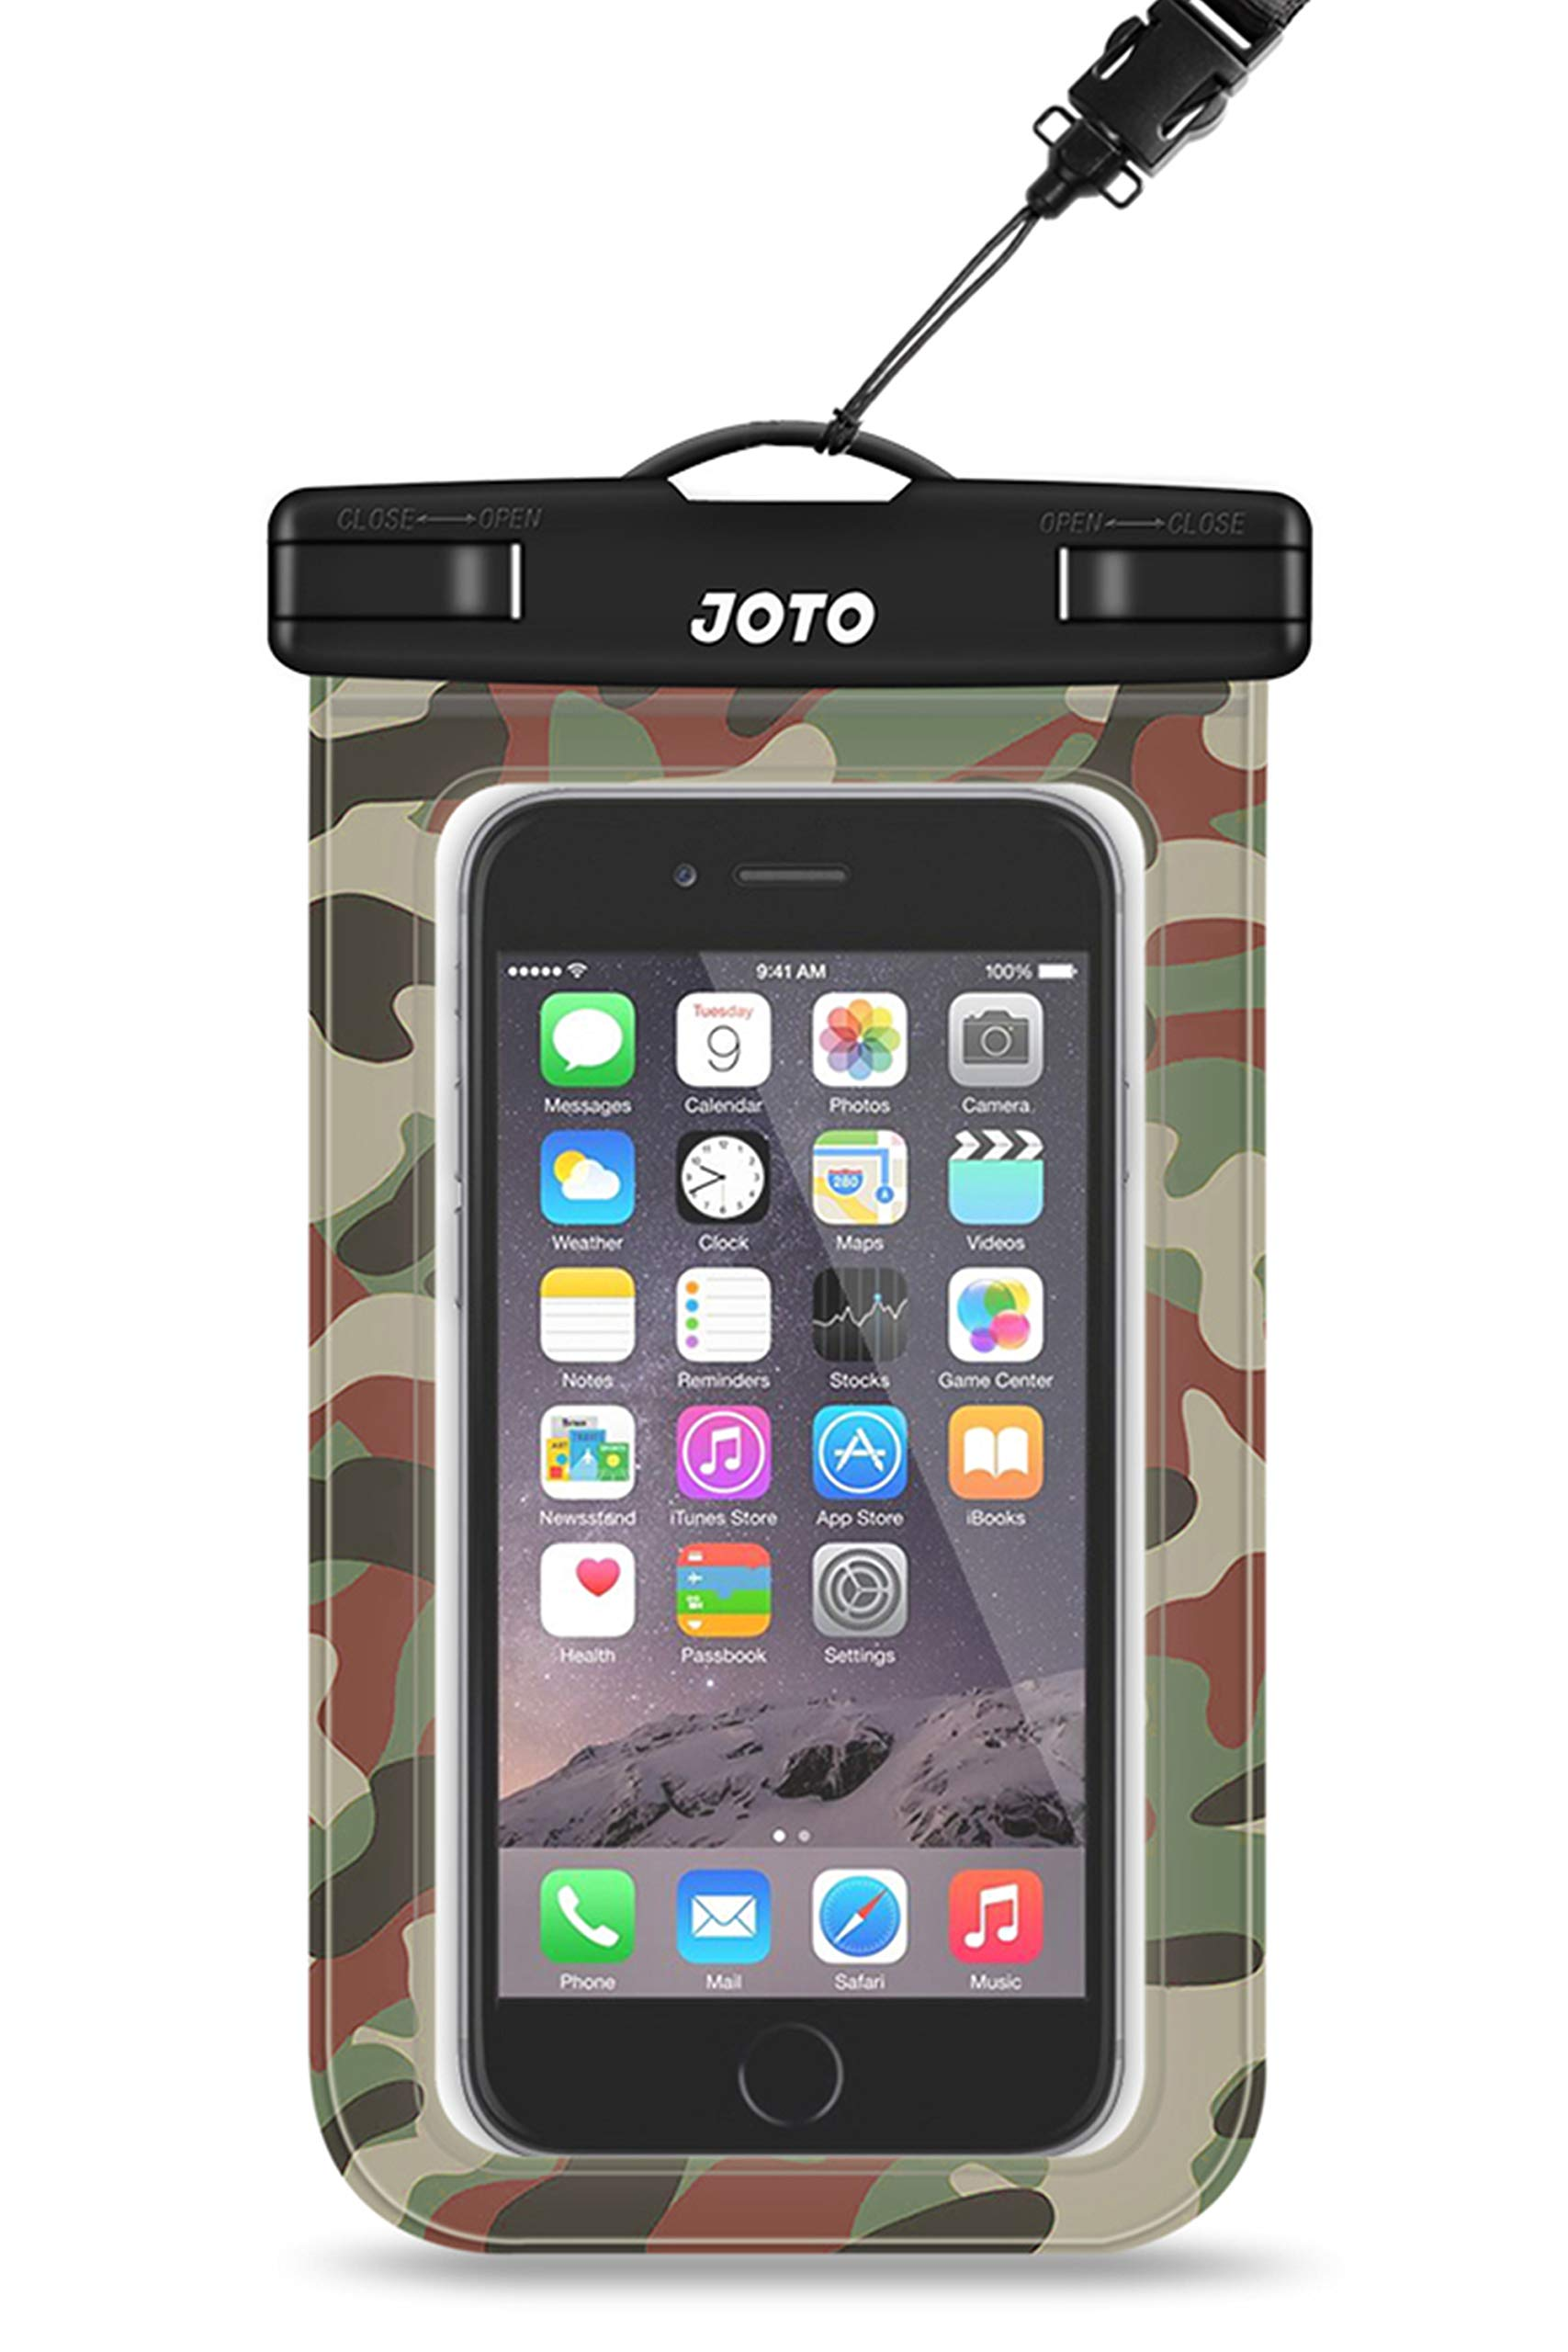 """JOTO Universal Waterproof Pouch Cellphone Dry Bag Case for iPhone 11 Pro Max Xs Max XR X 8 7 6S Plus SE 2020, Galaxy S20 Ultra S20+ S10 Plus S10e S9 Plus S8/Note 10+ 9, Pixel 4 XL up to 6.9"""" -Camo"""